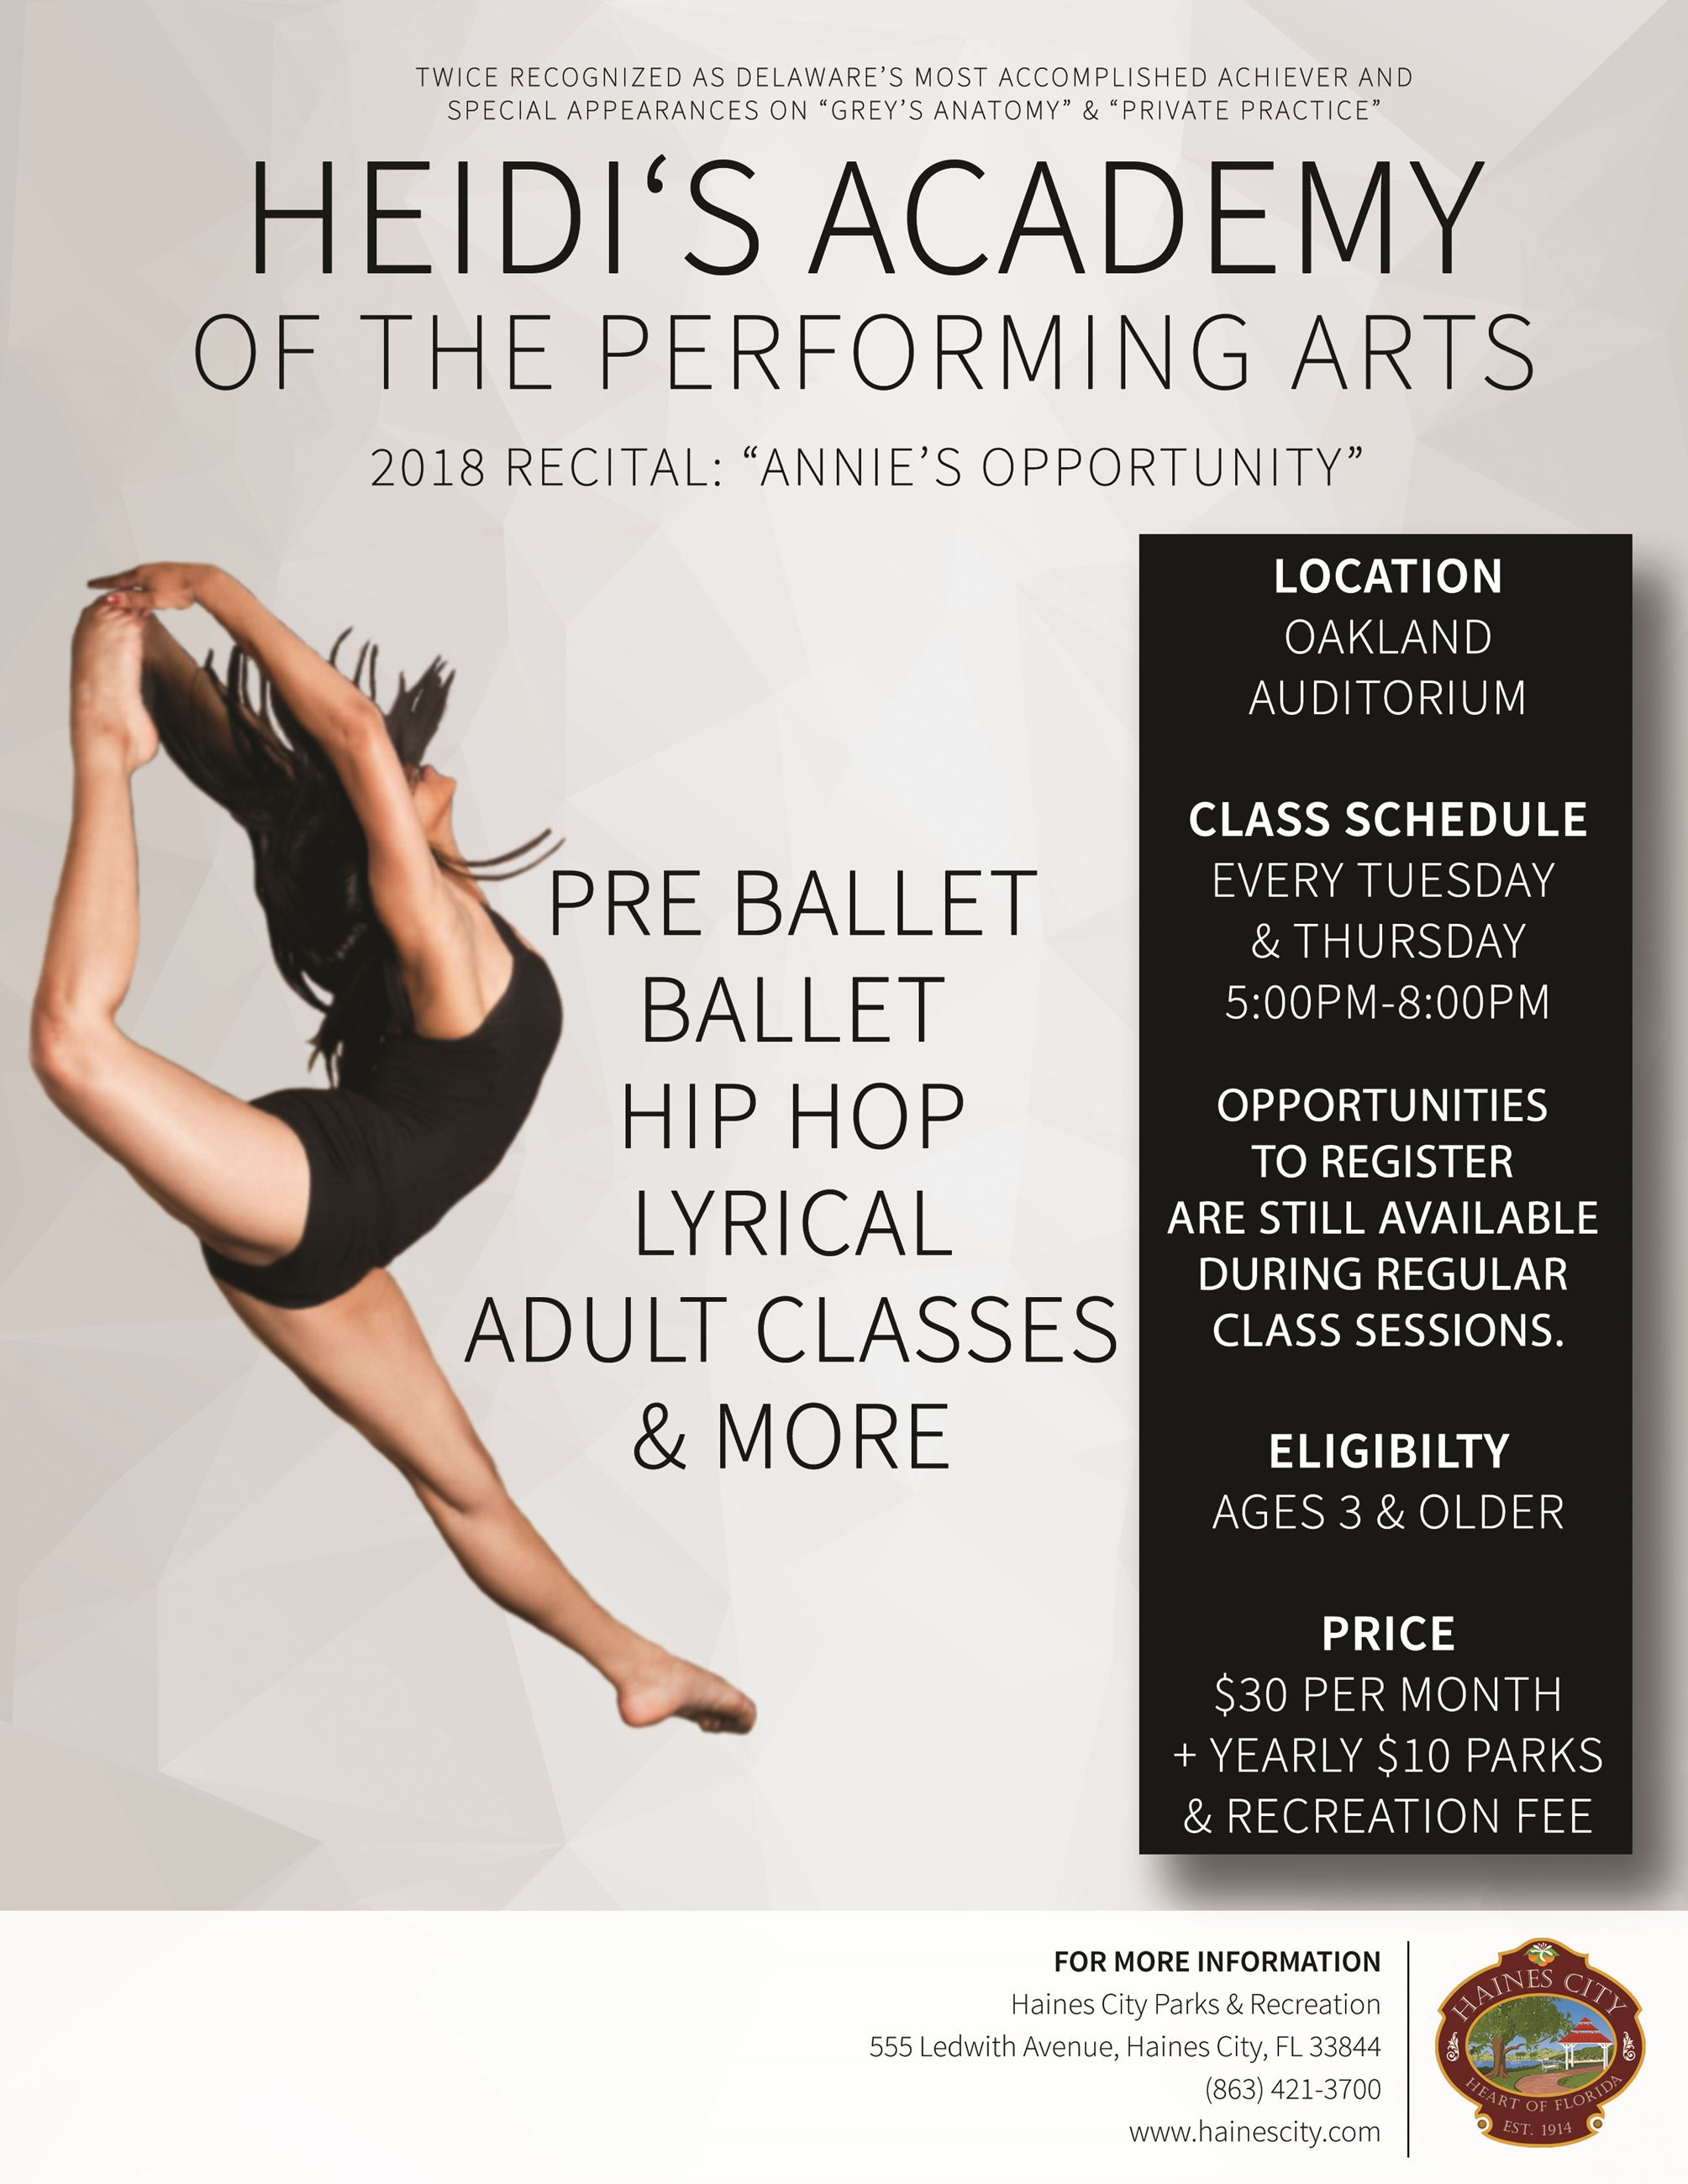 Heidi's Academy of the Performing Arts (PDF IMAGE)